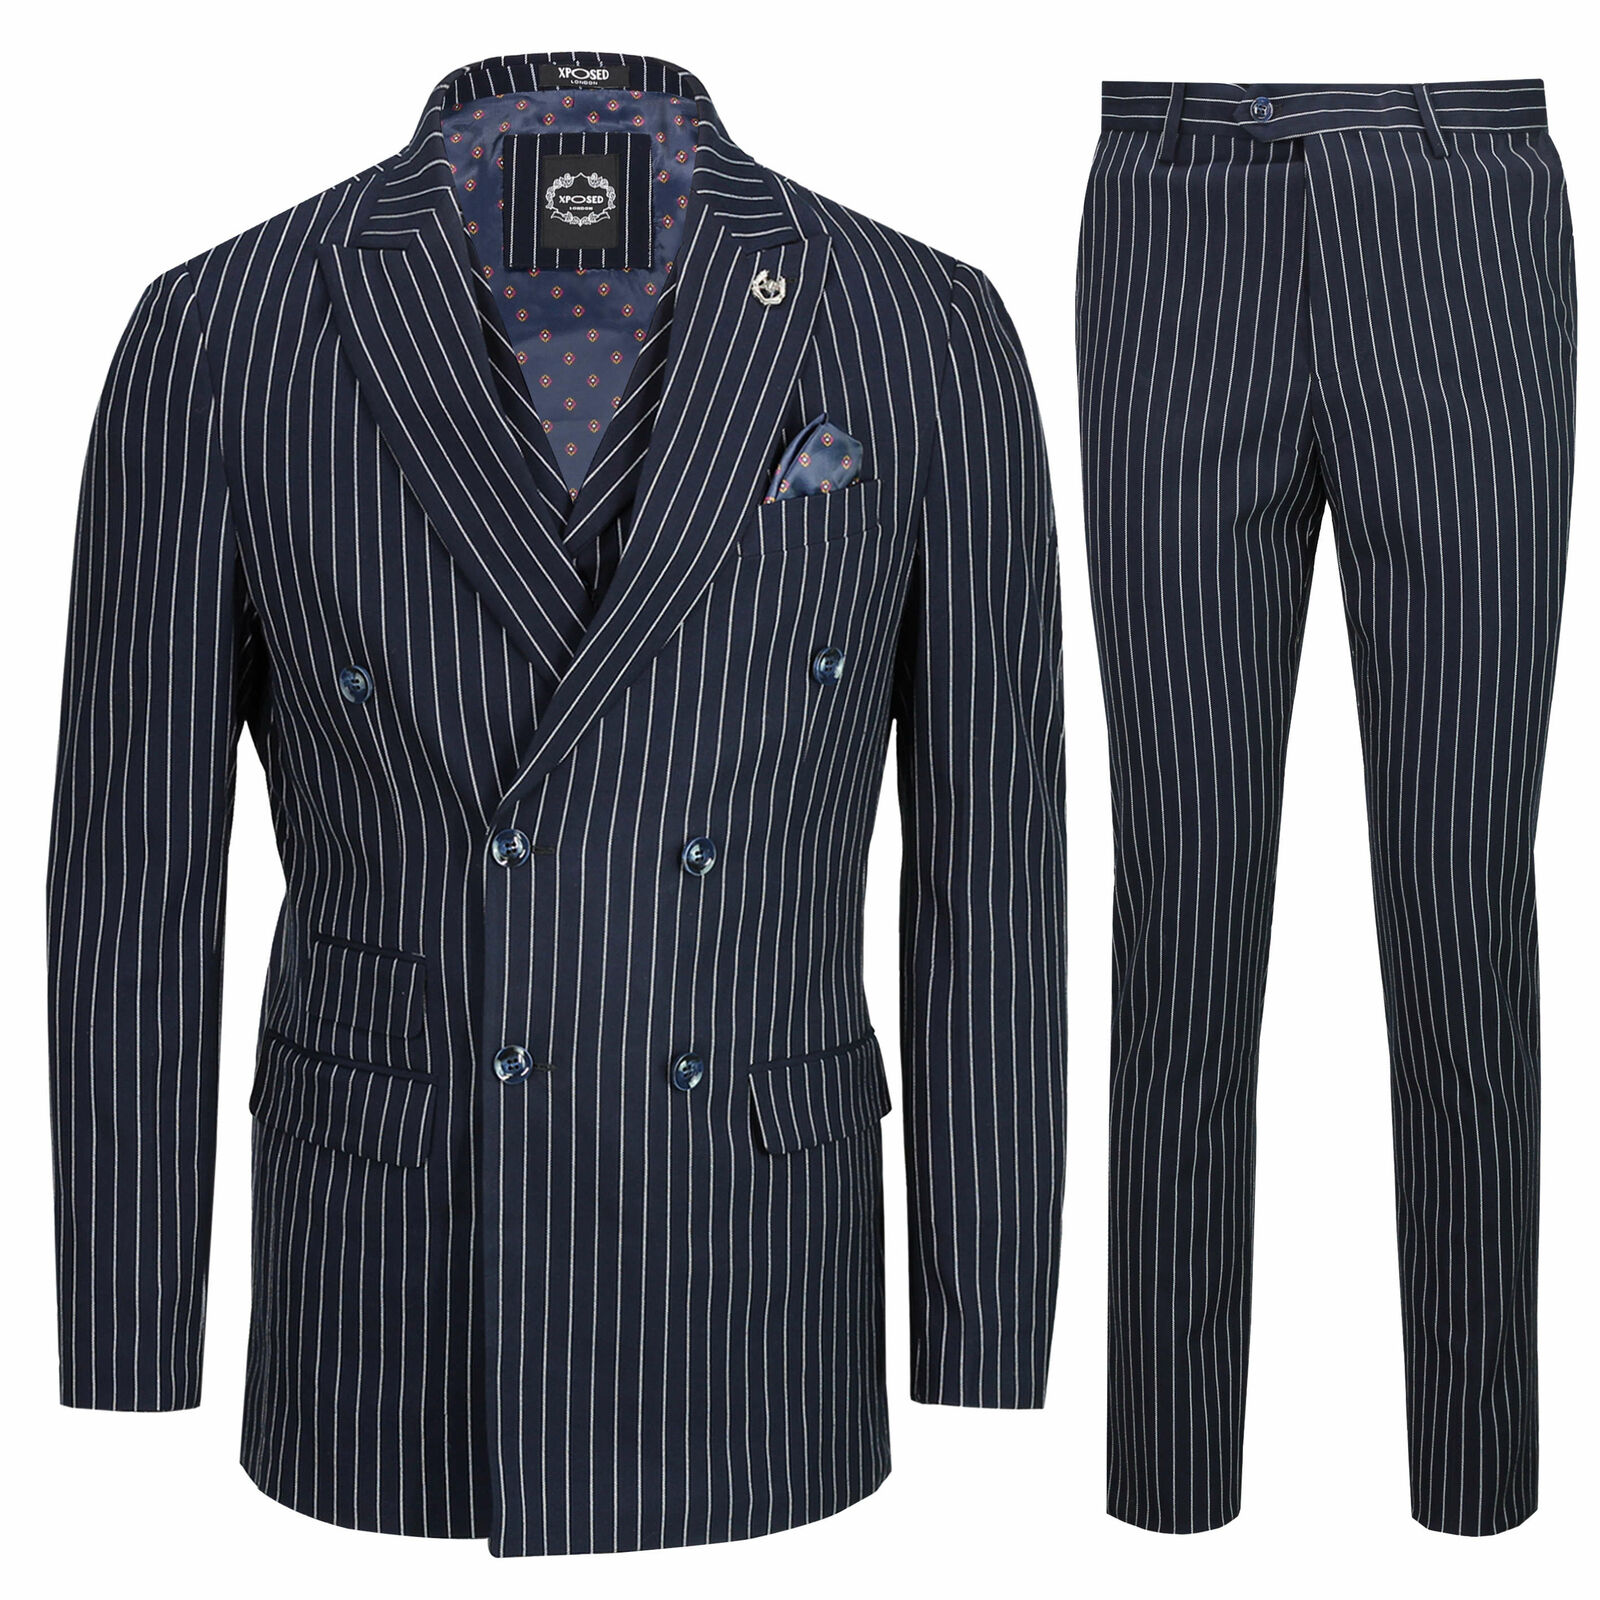 Button Double Breasted Suit Old Fashioned